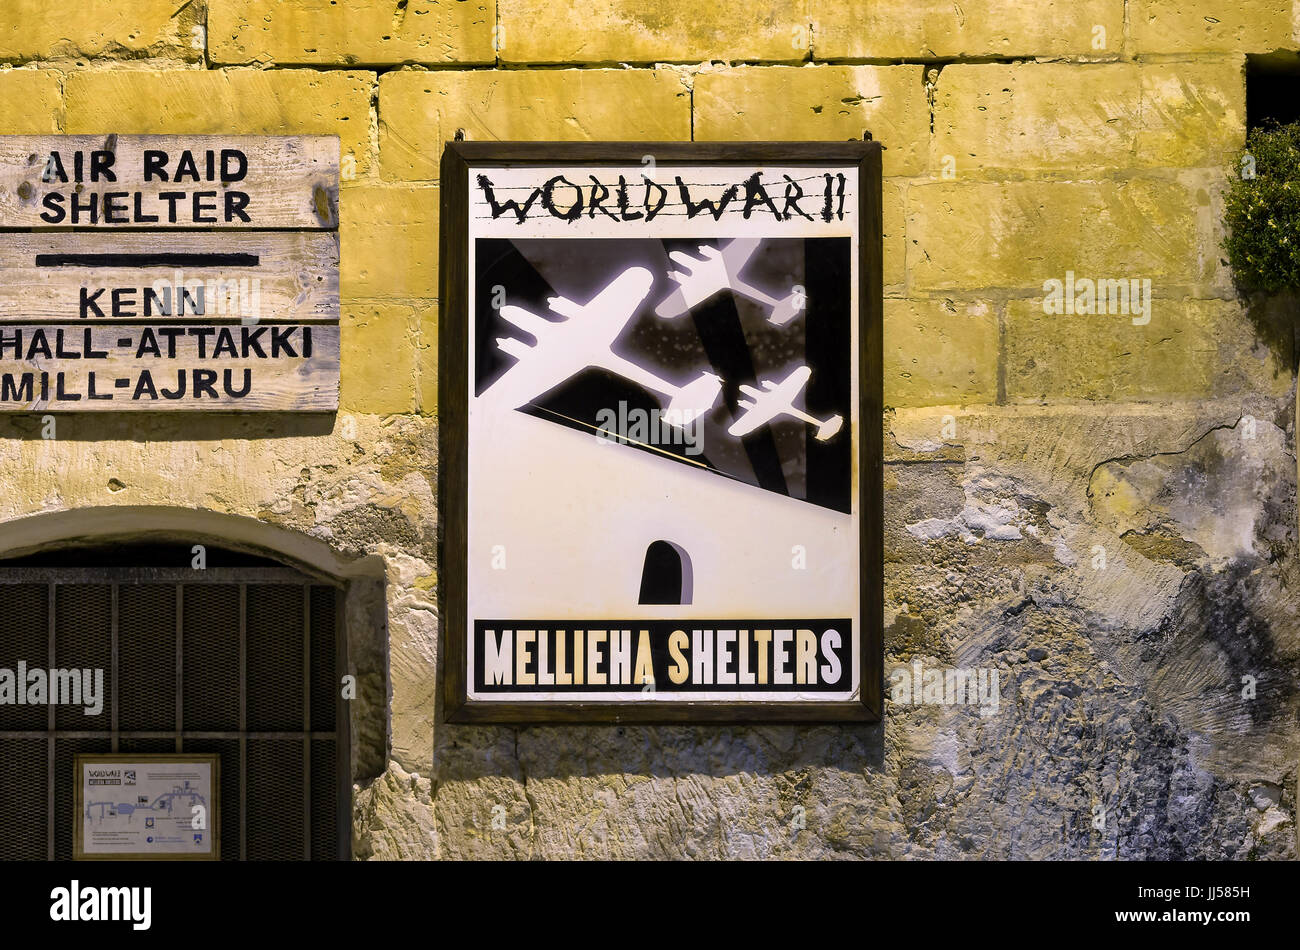 Signboards above the entrance to air raid shelters - Mellieha, Malta. - Stock Image